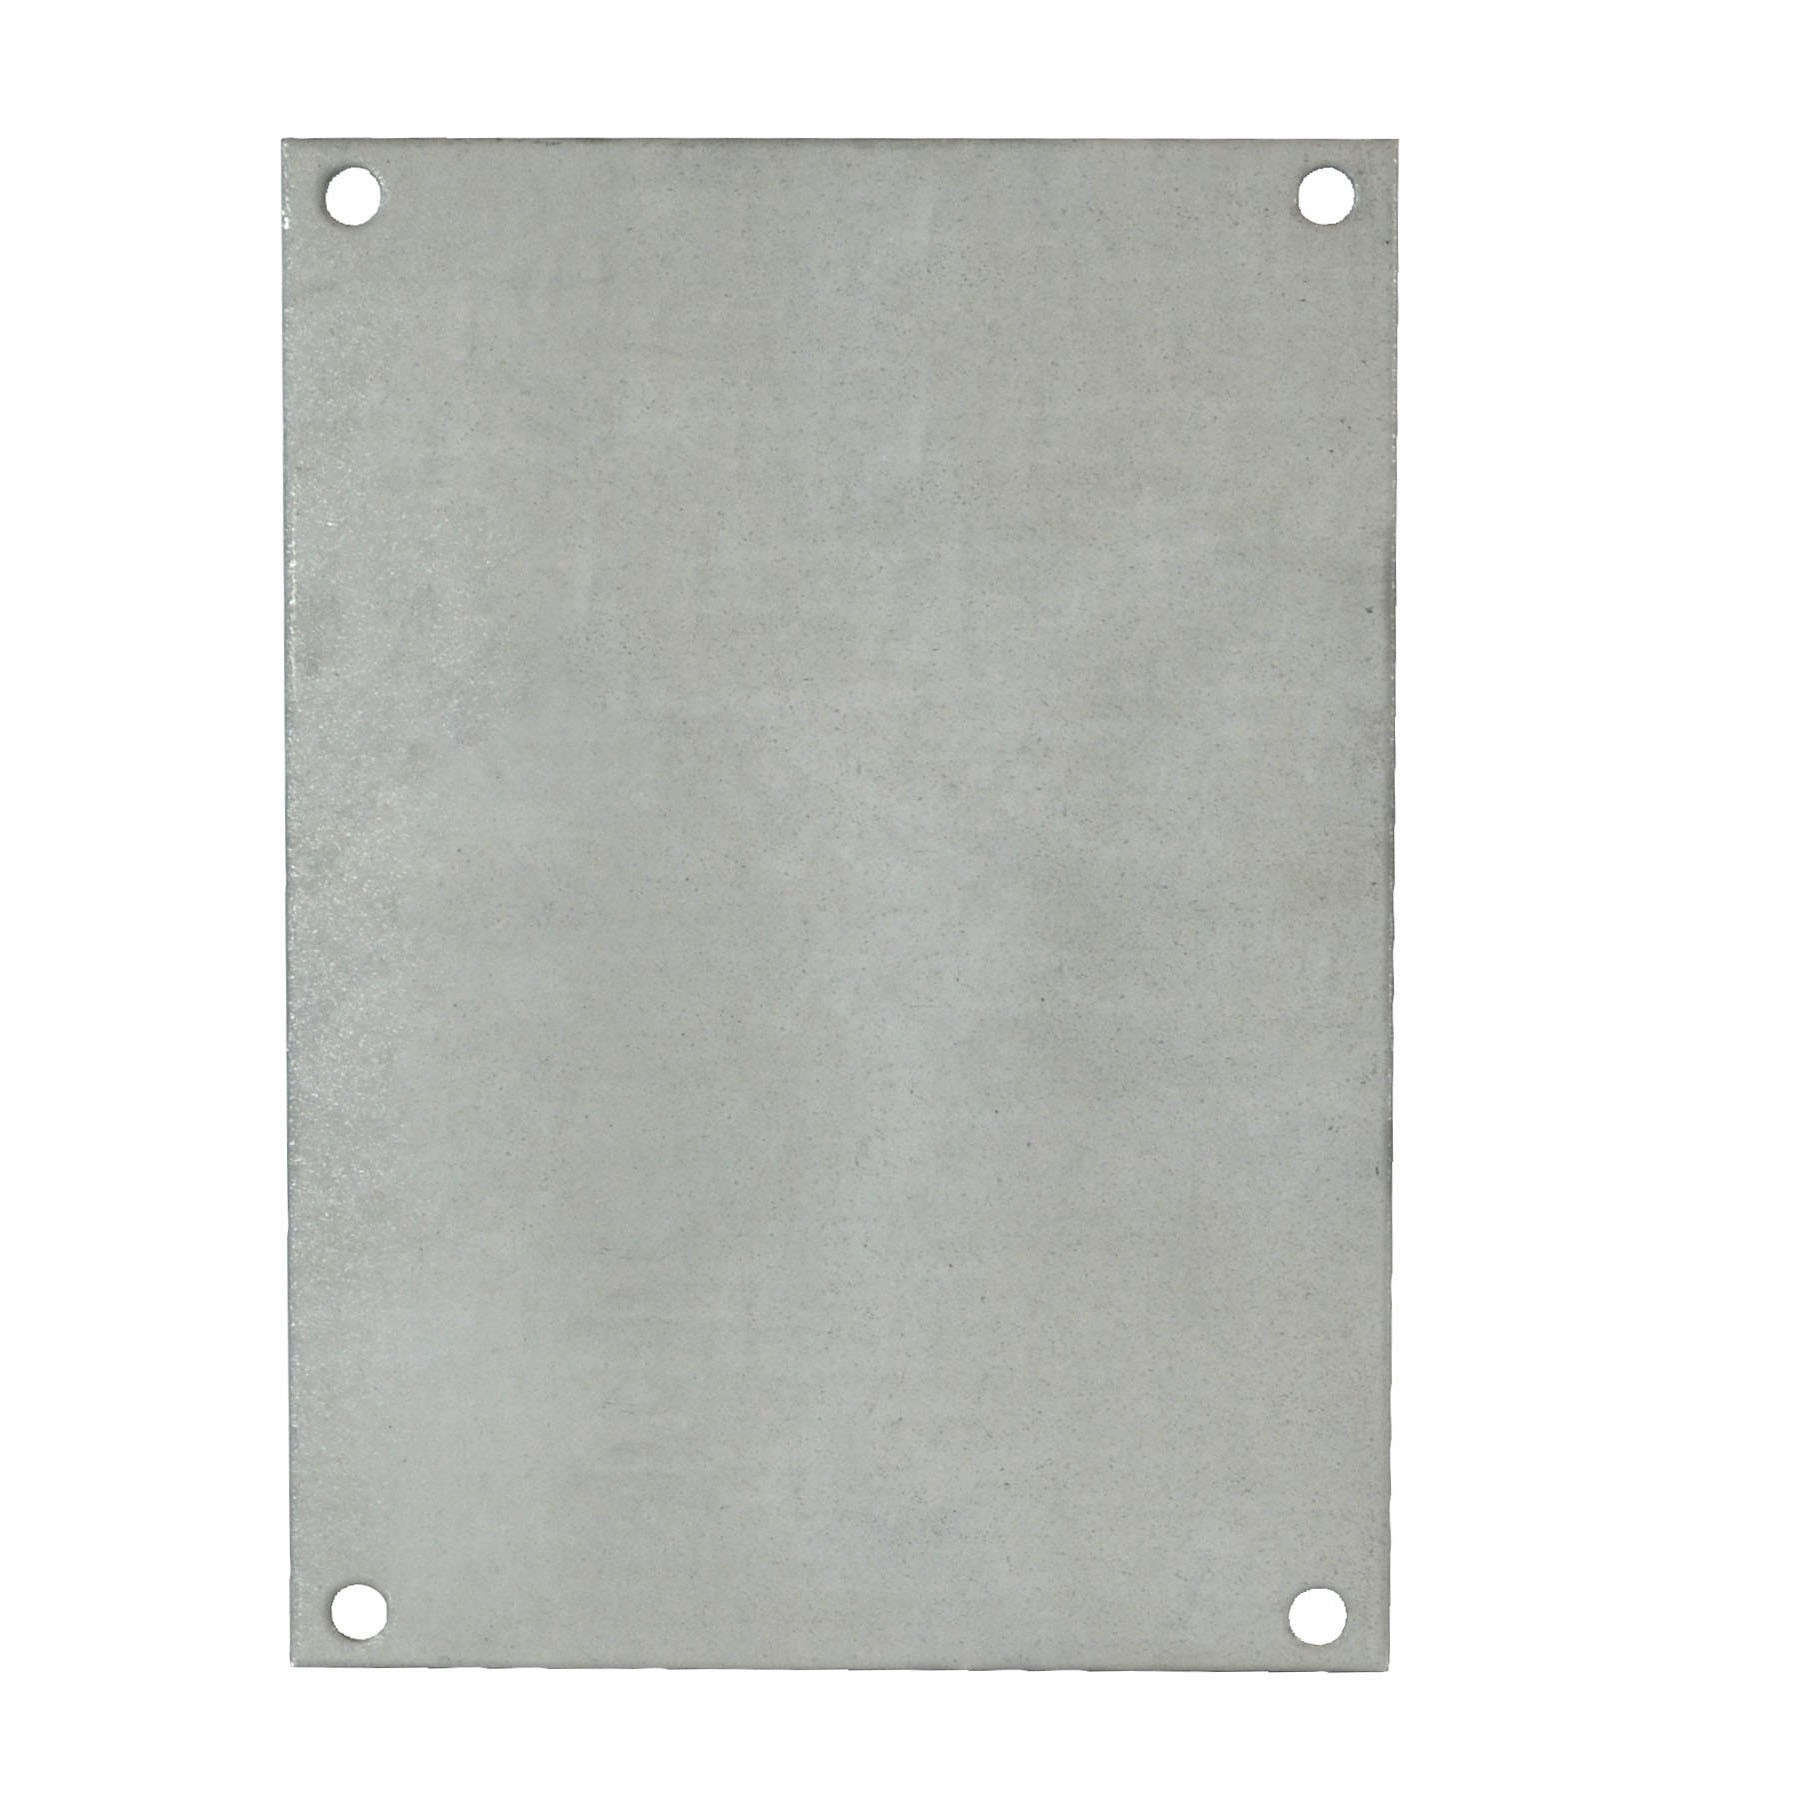 "Galvanized Back Panel for 8"" x 6"" Enclosures"